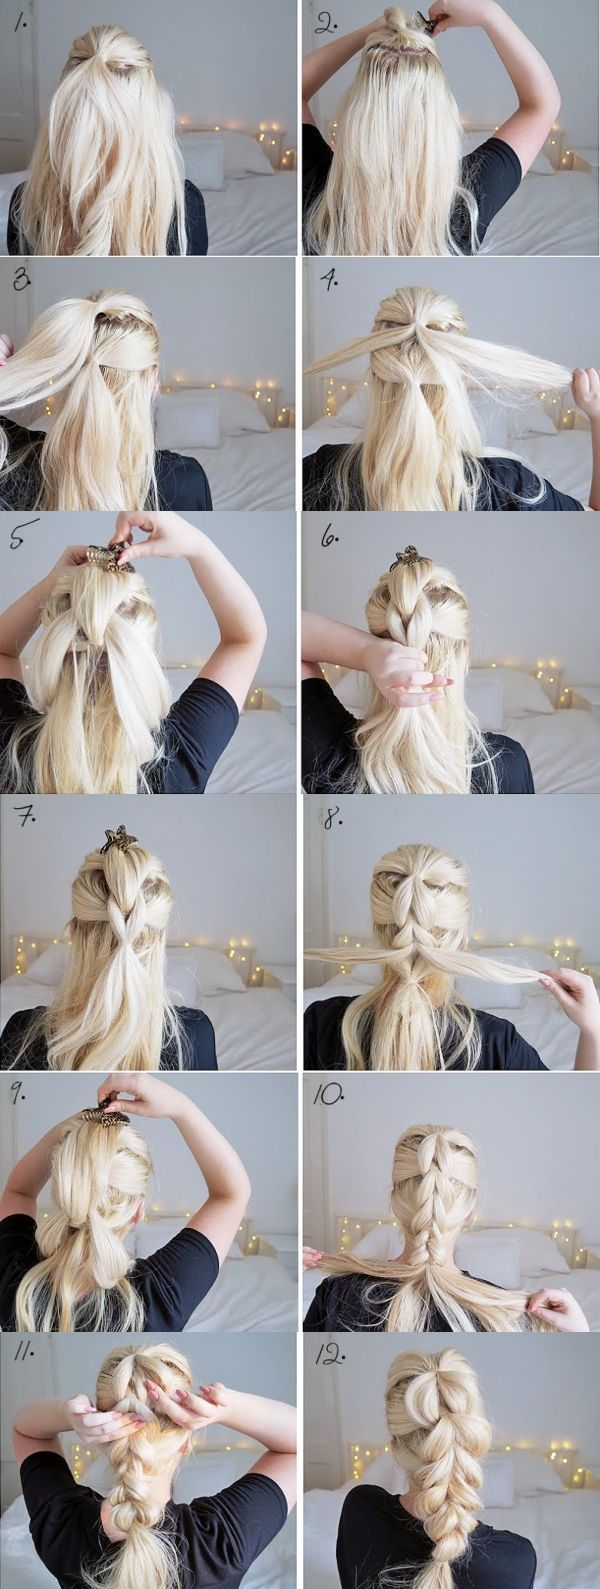 What hairstyles can be done 2